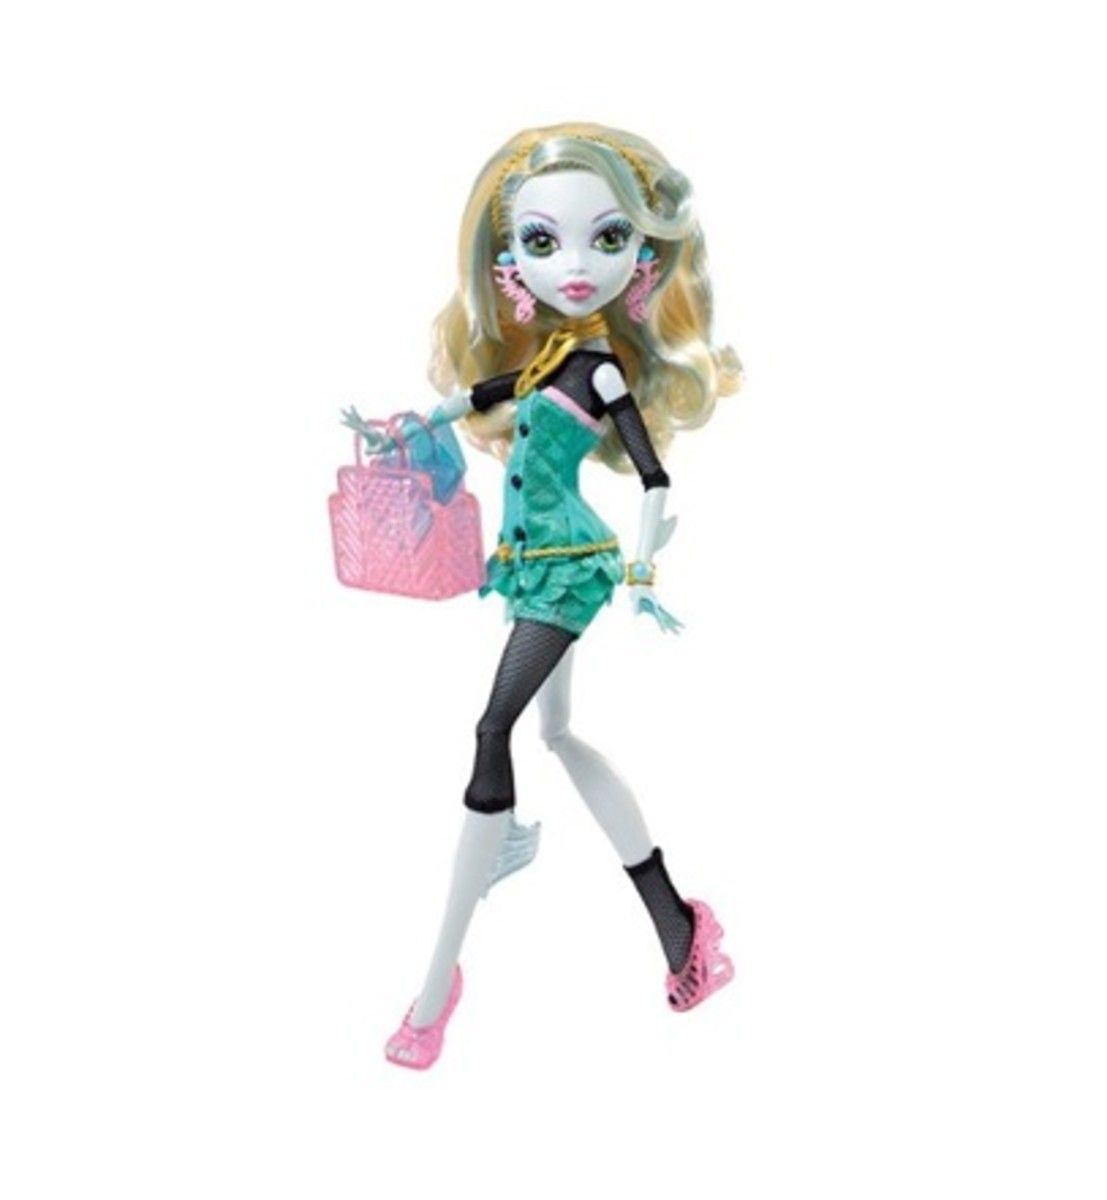 monster-high-lagoona-blue-dolls-complete-list-of-dolls